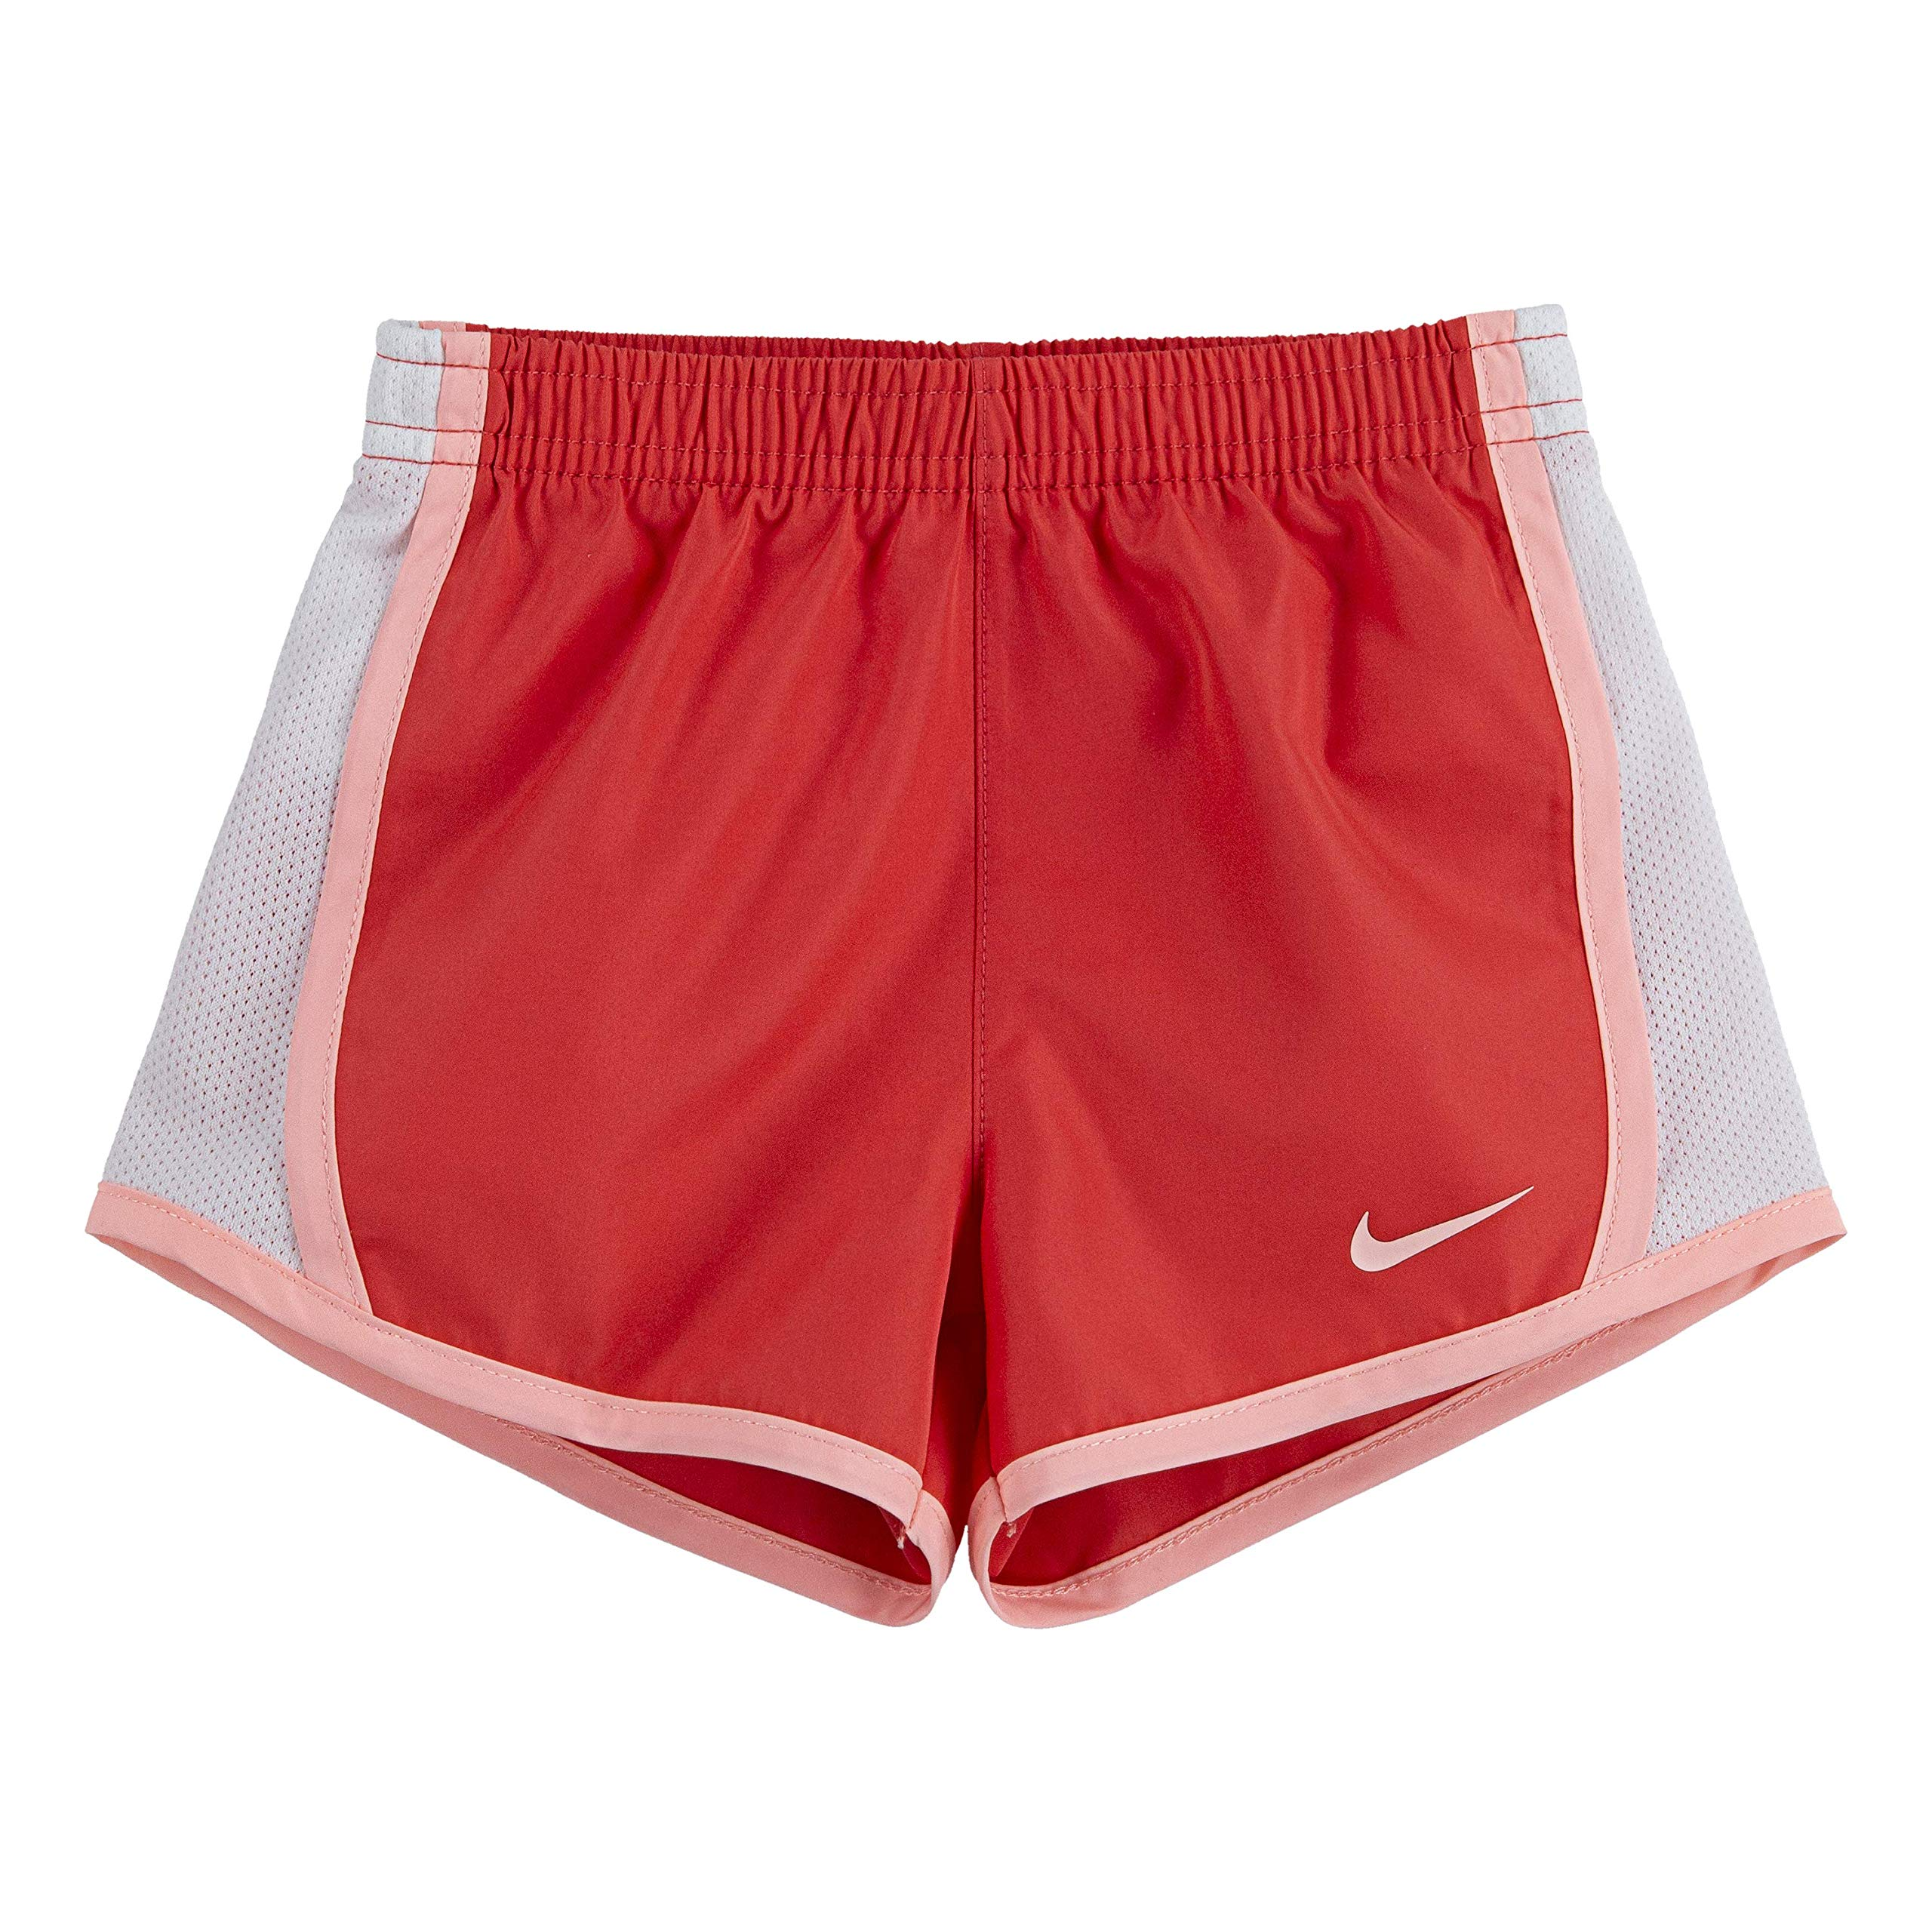 NIKE Children's Apparel Girls' Toddler Dri-FIT Tempo Shorts, Ember Glow, 2T by NIKE Children's Apparel